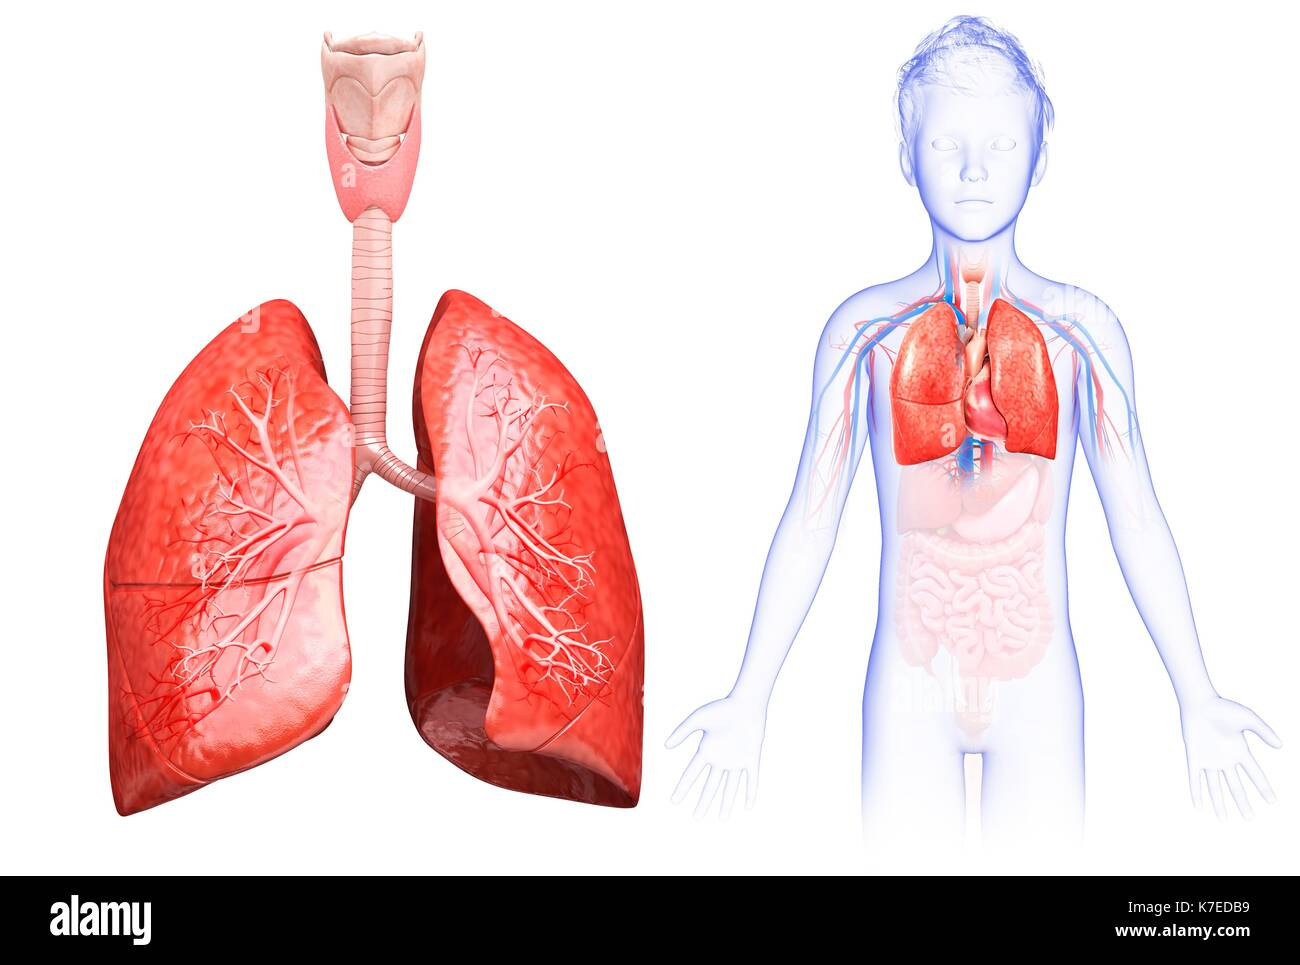 Lung Anatomy Child Stock Photos & Lung Anatomy Child Stock Images ...